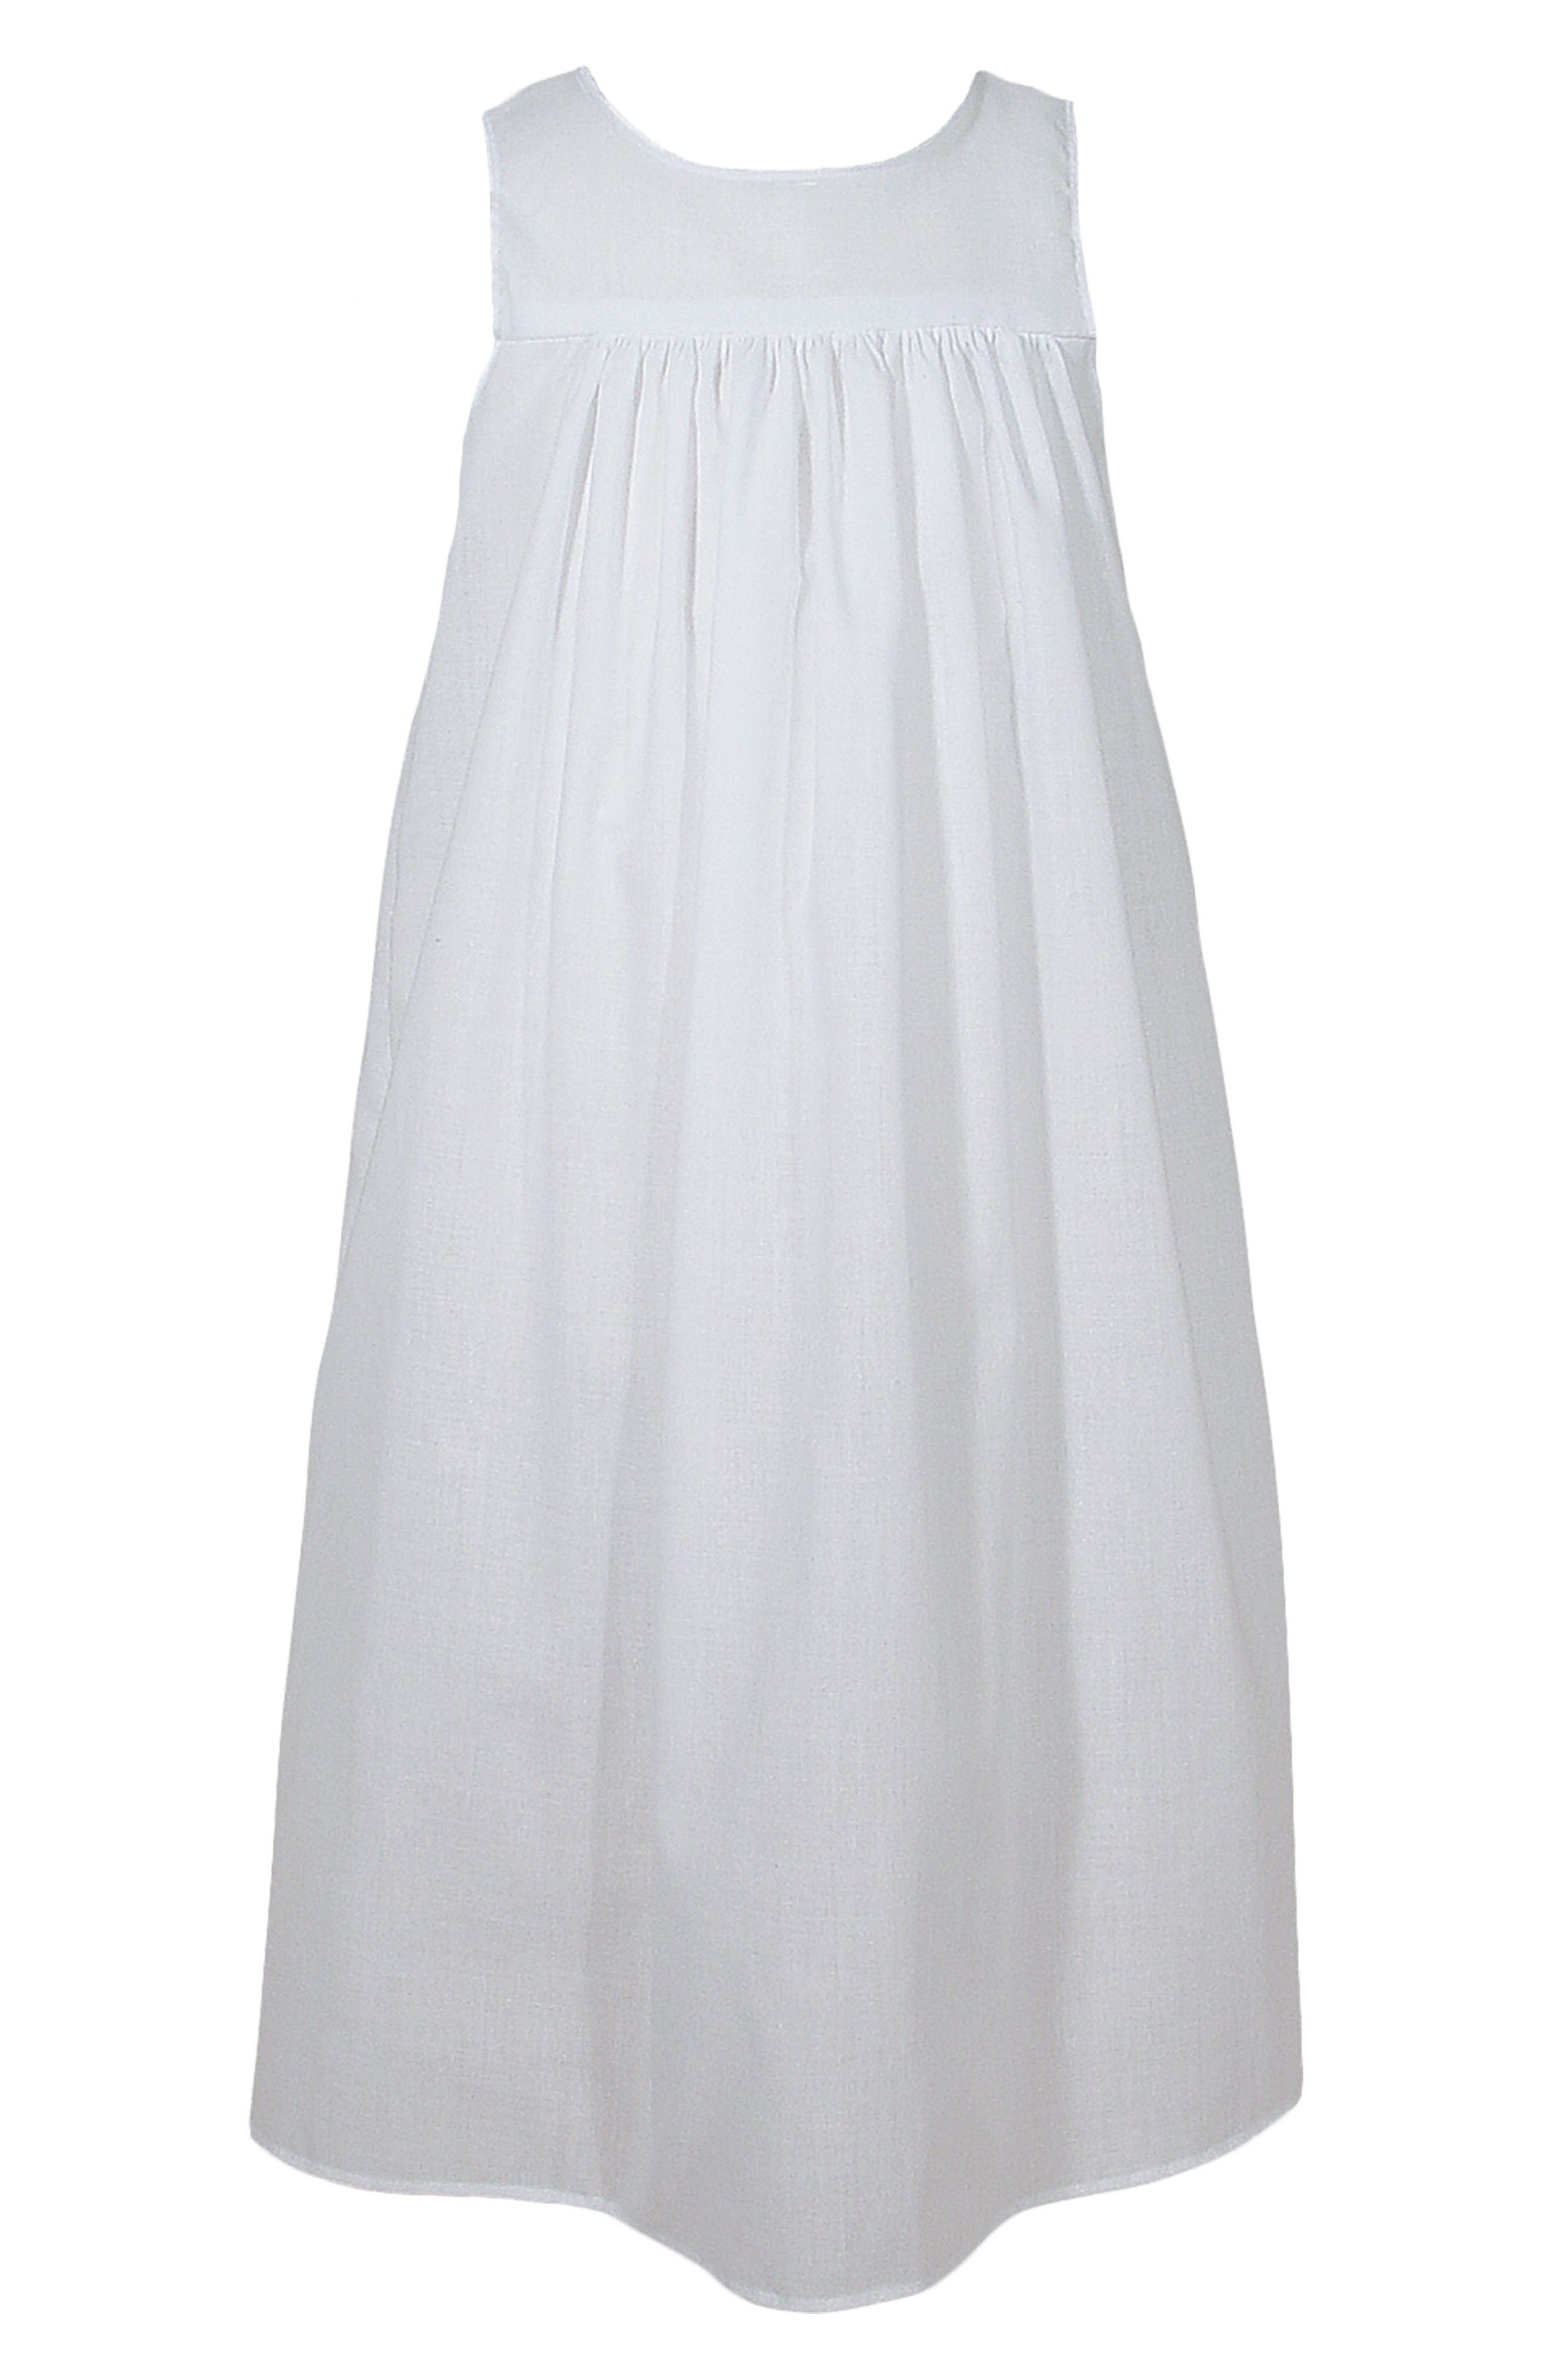 Main Image - Little Things Mean A Lot Christening Gown Slip (Baby Girls)